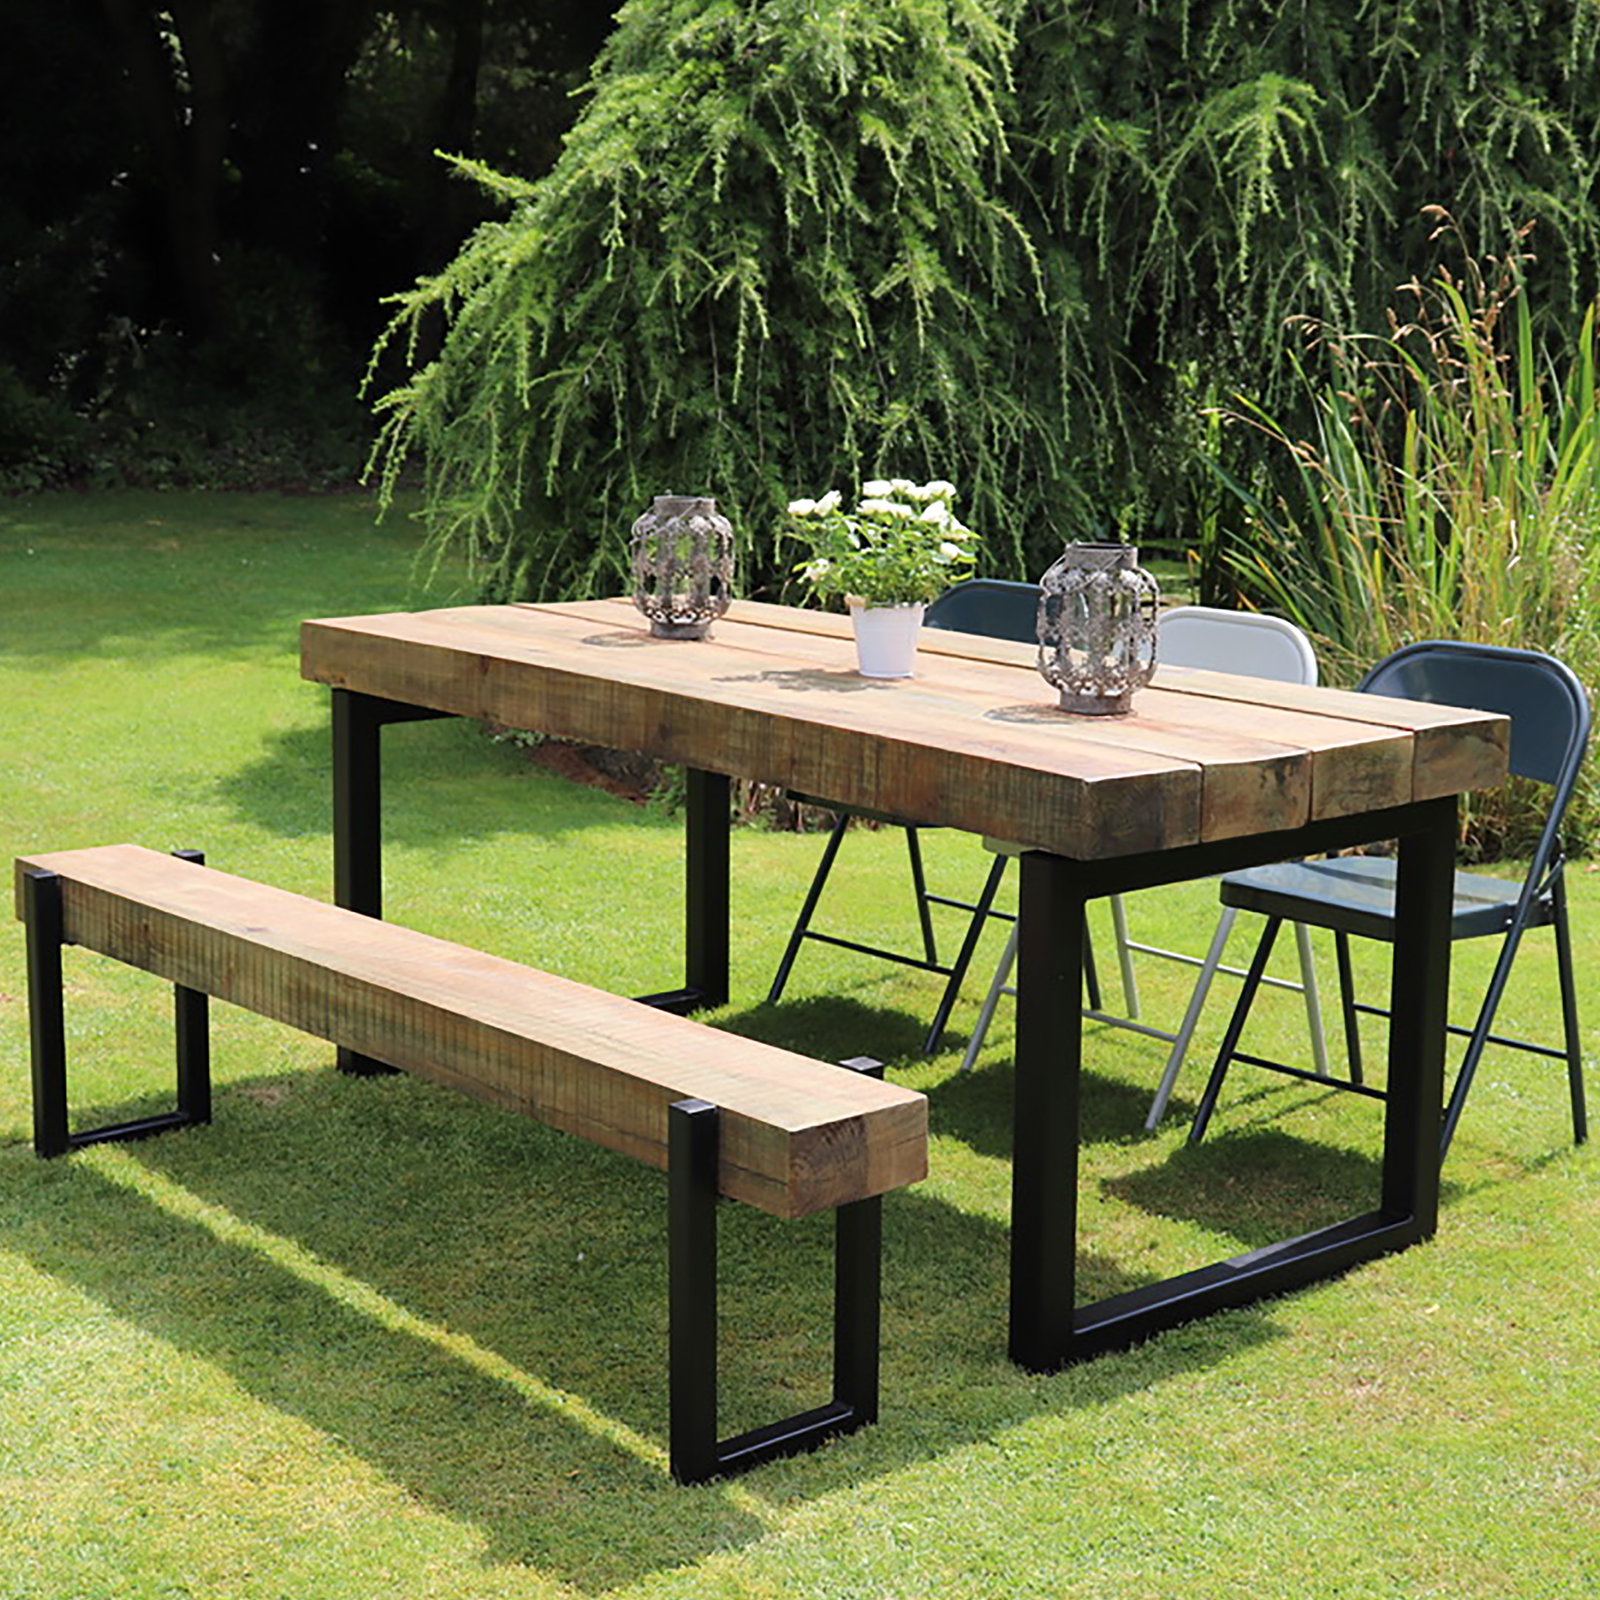 Industrial Outdoor sleeper Table